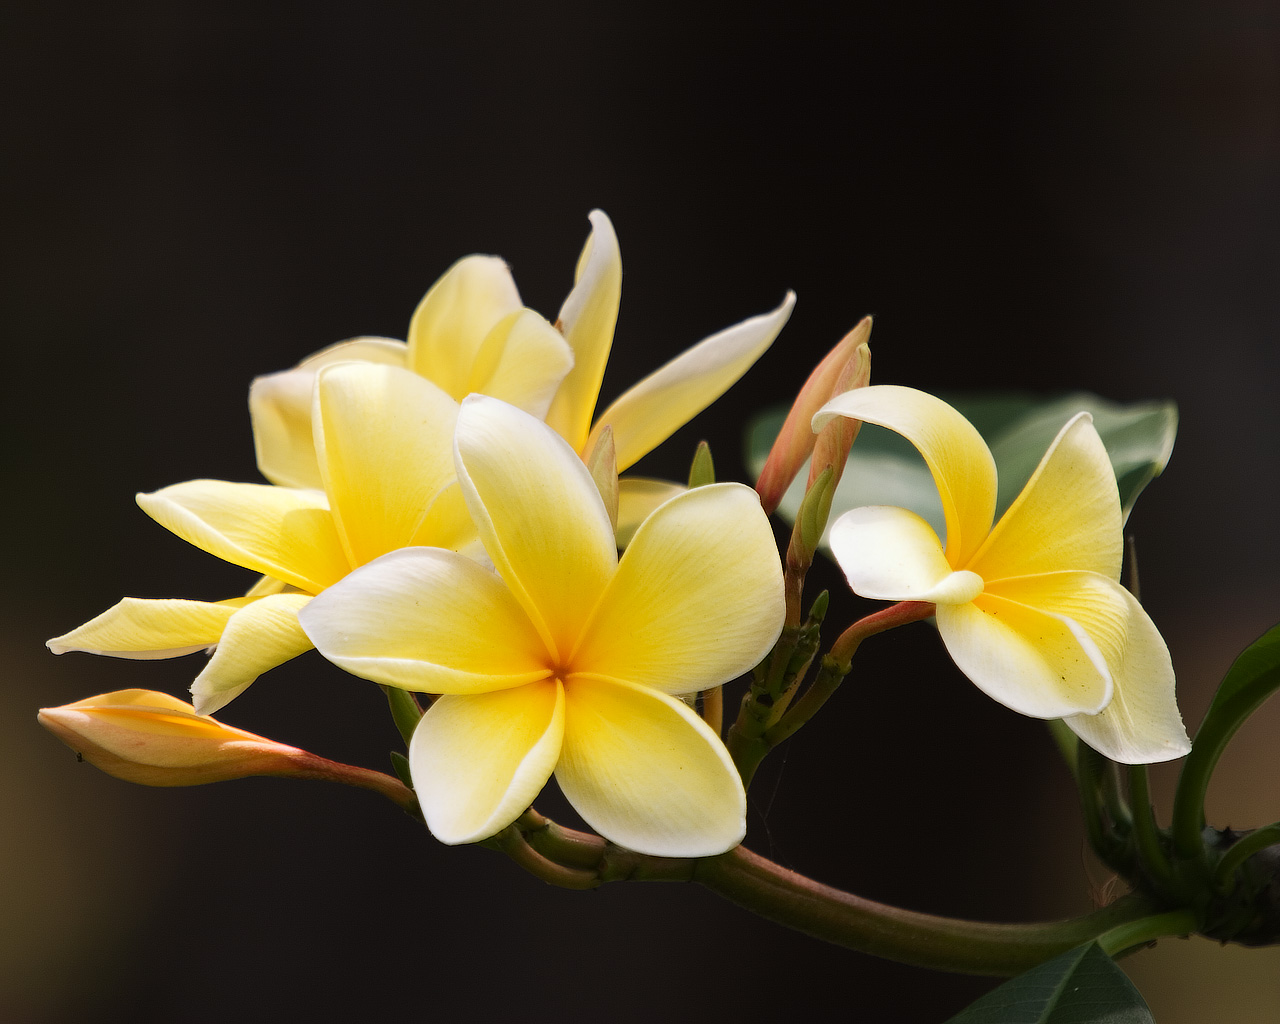 Flowers Wallpapers: Frangipani Flowers Wallpapers